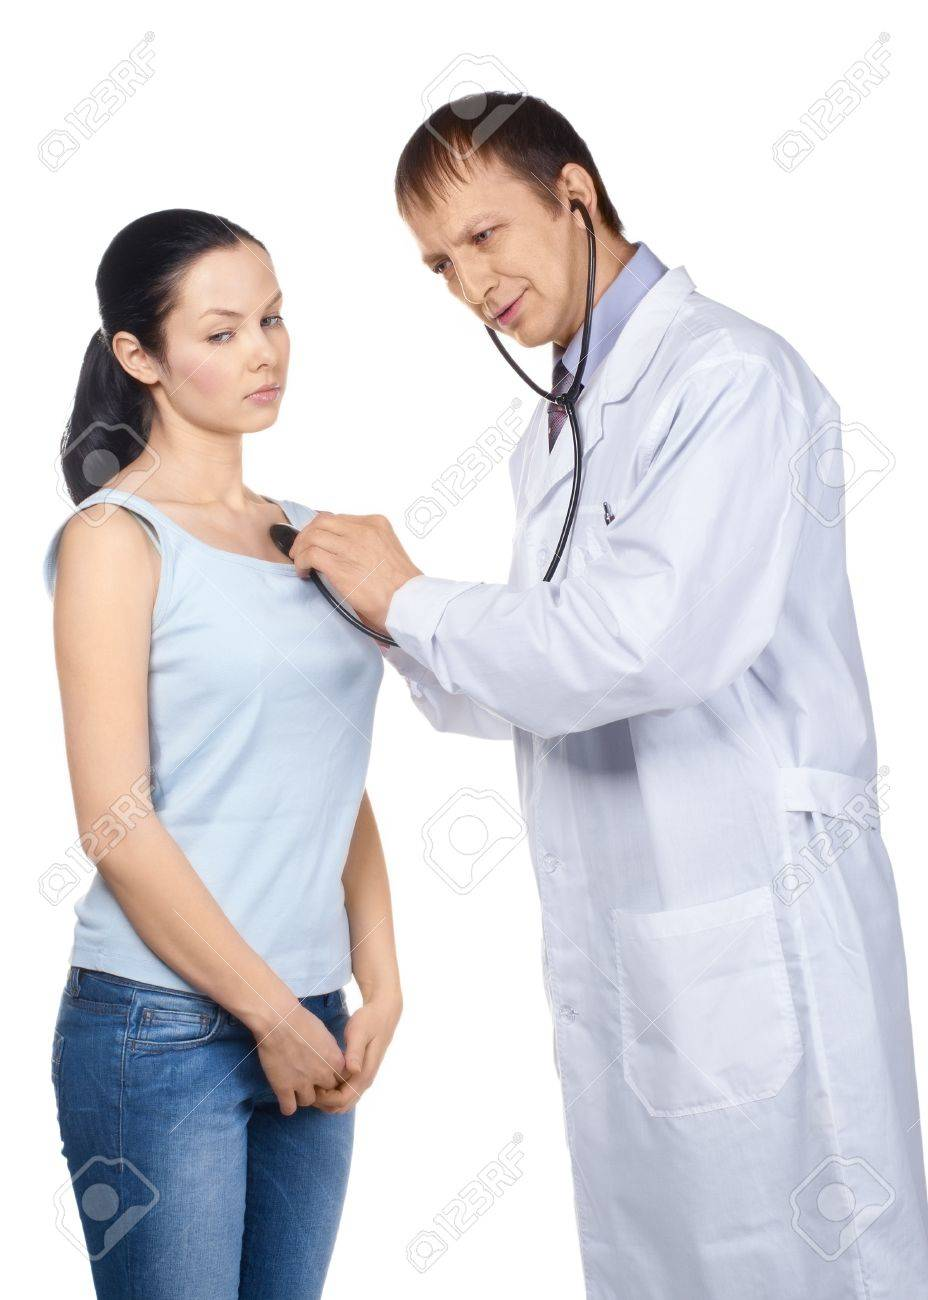 Doctor Listening Doctor Listening The Heartbeat